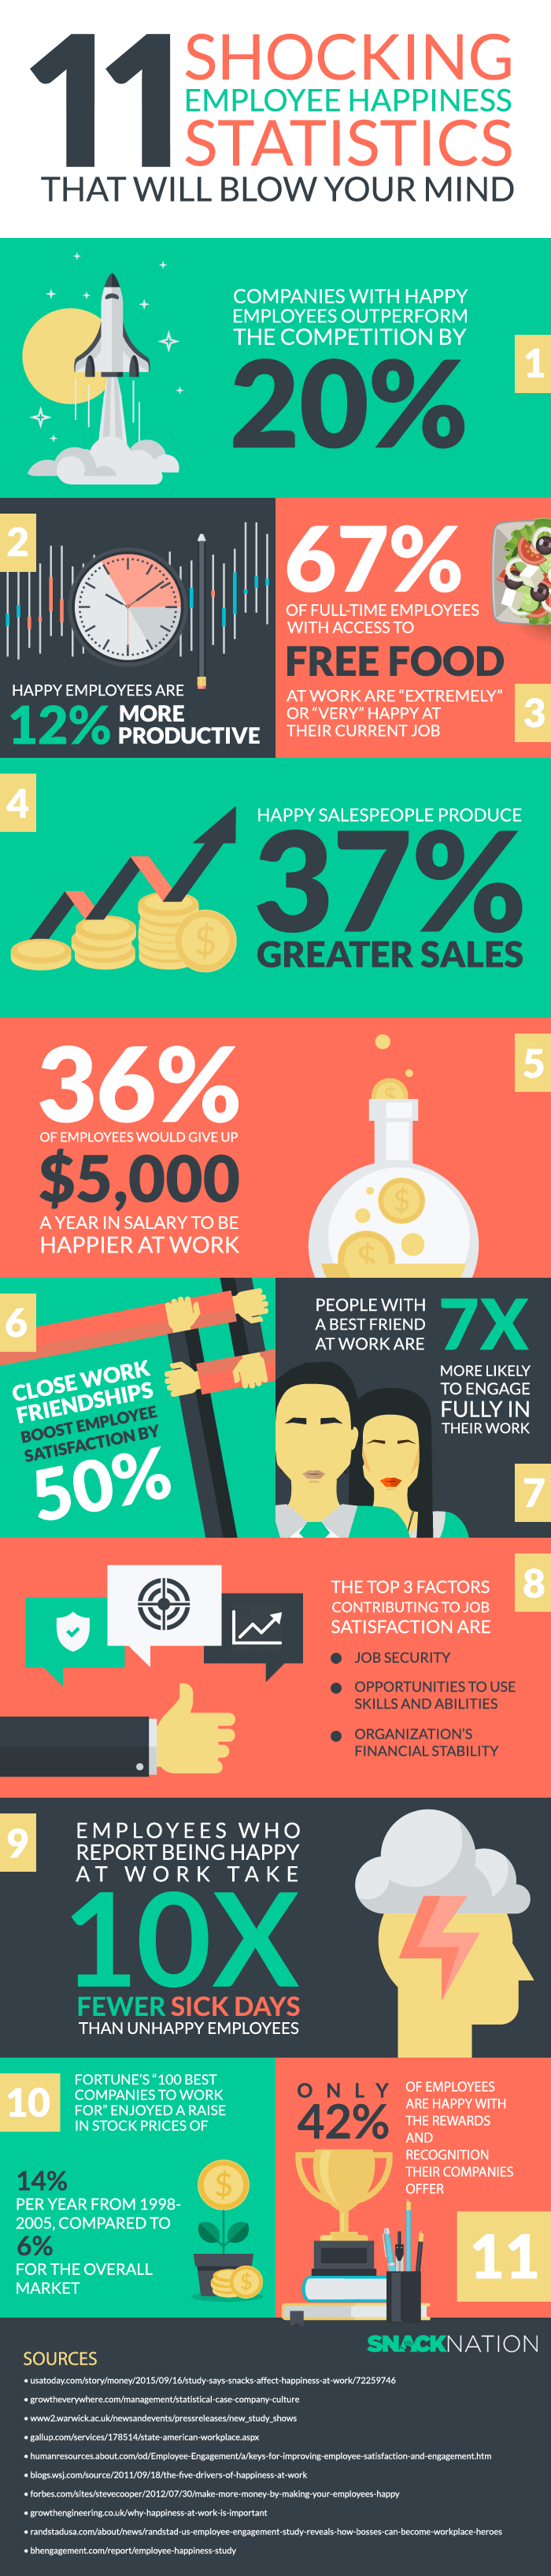 Employee-happiness-infographic.png